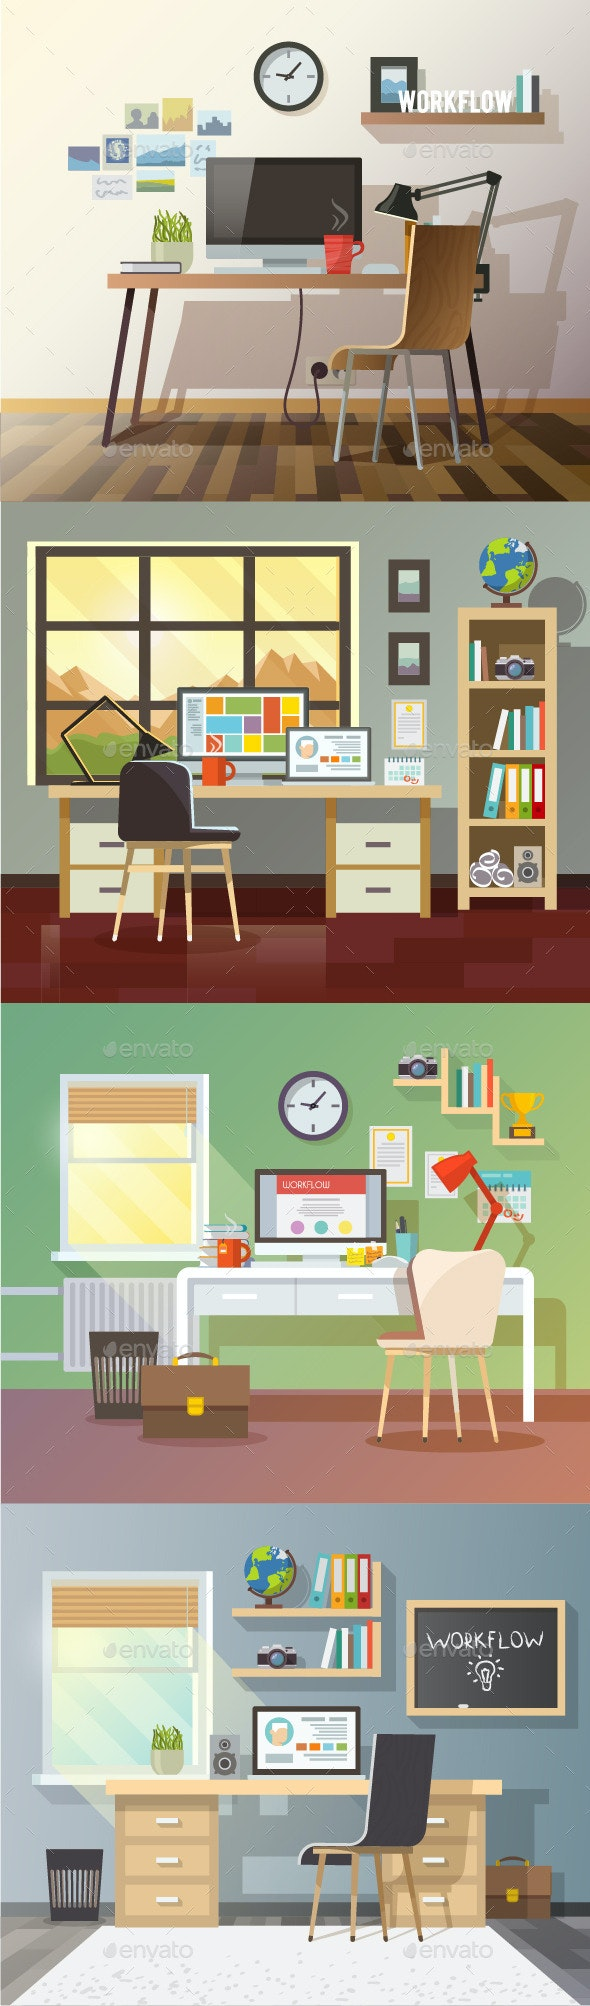 Workplace Illustrations - Backgrounds Business